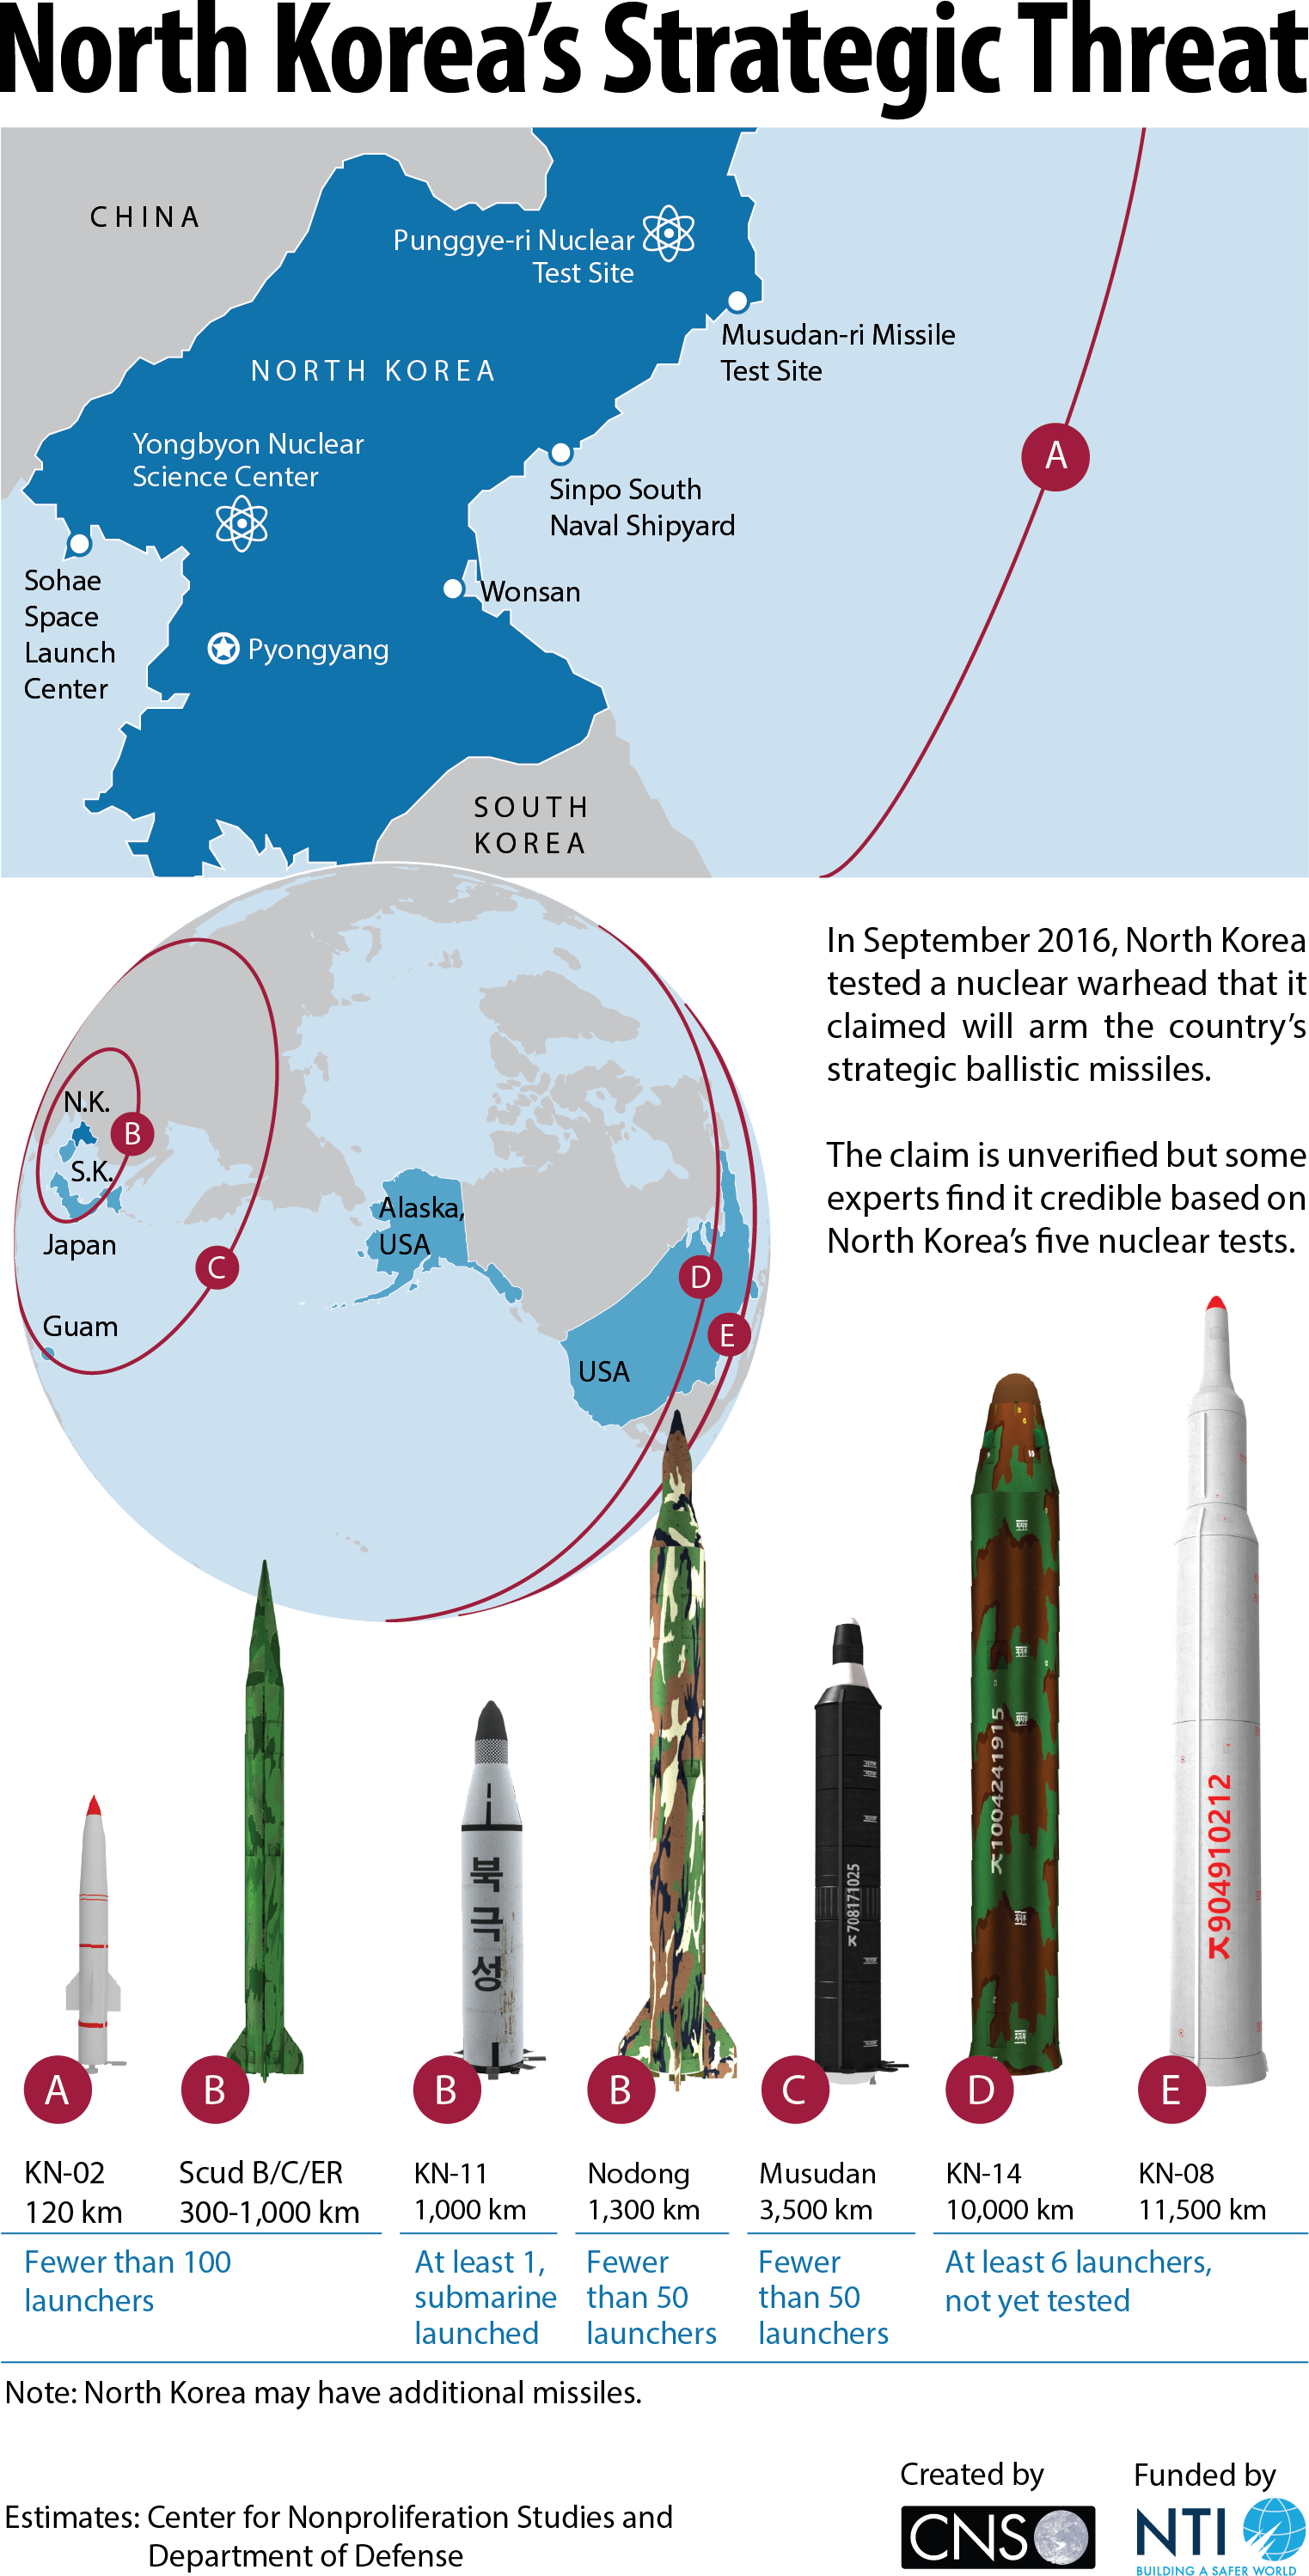 https://theaviationist.com/wp-content/uploads/2017/04/North-Korea-missiles.png